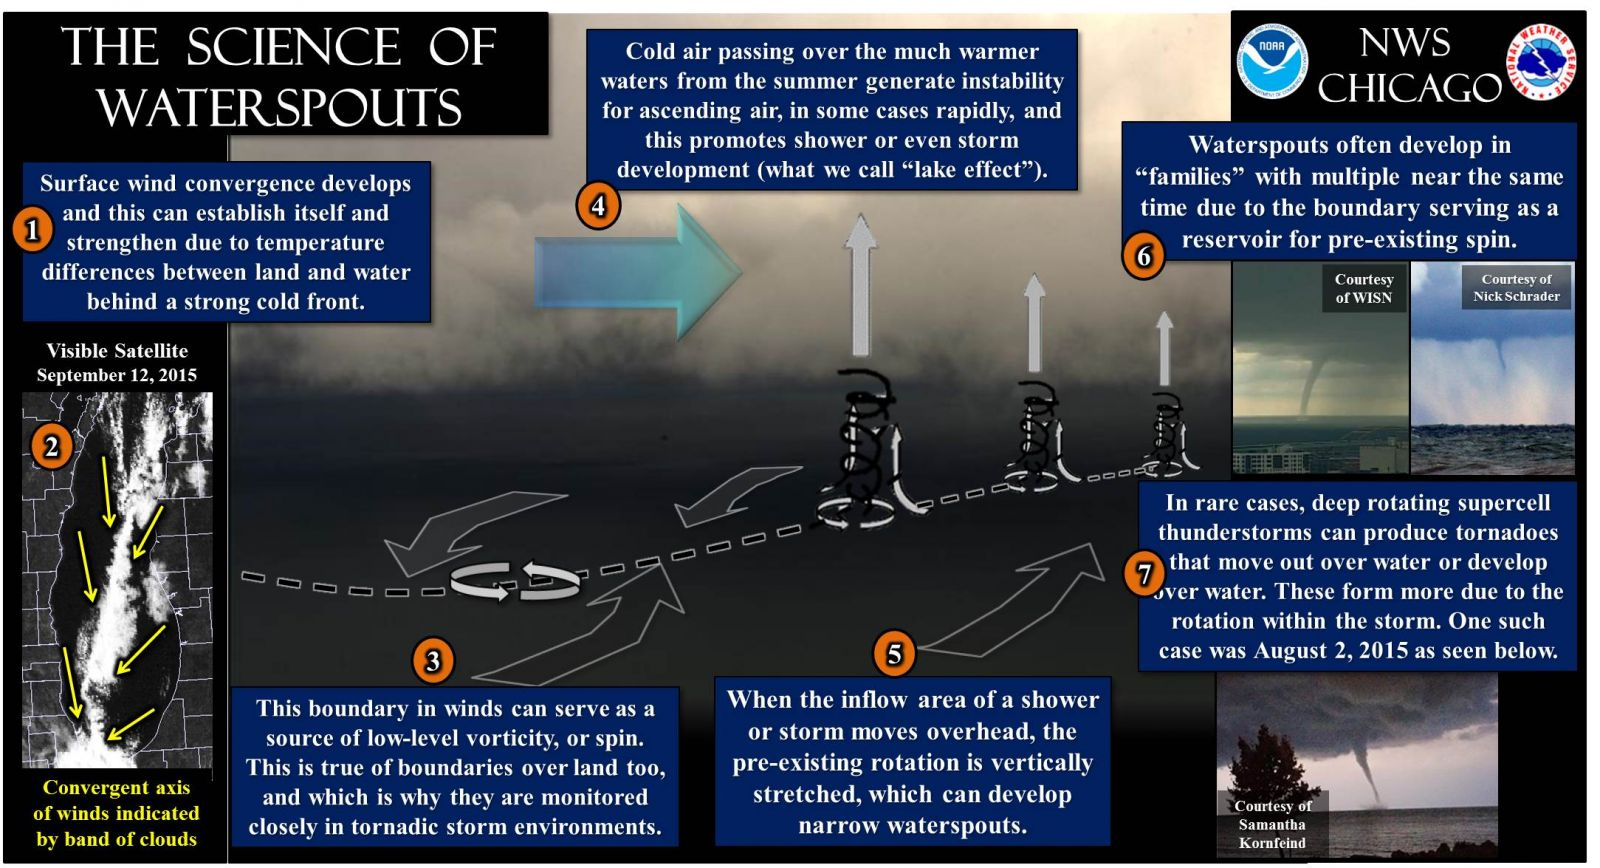 The Science of Waterspouts